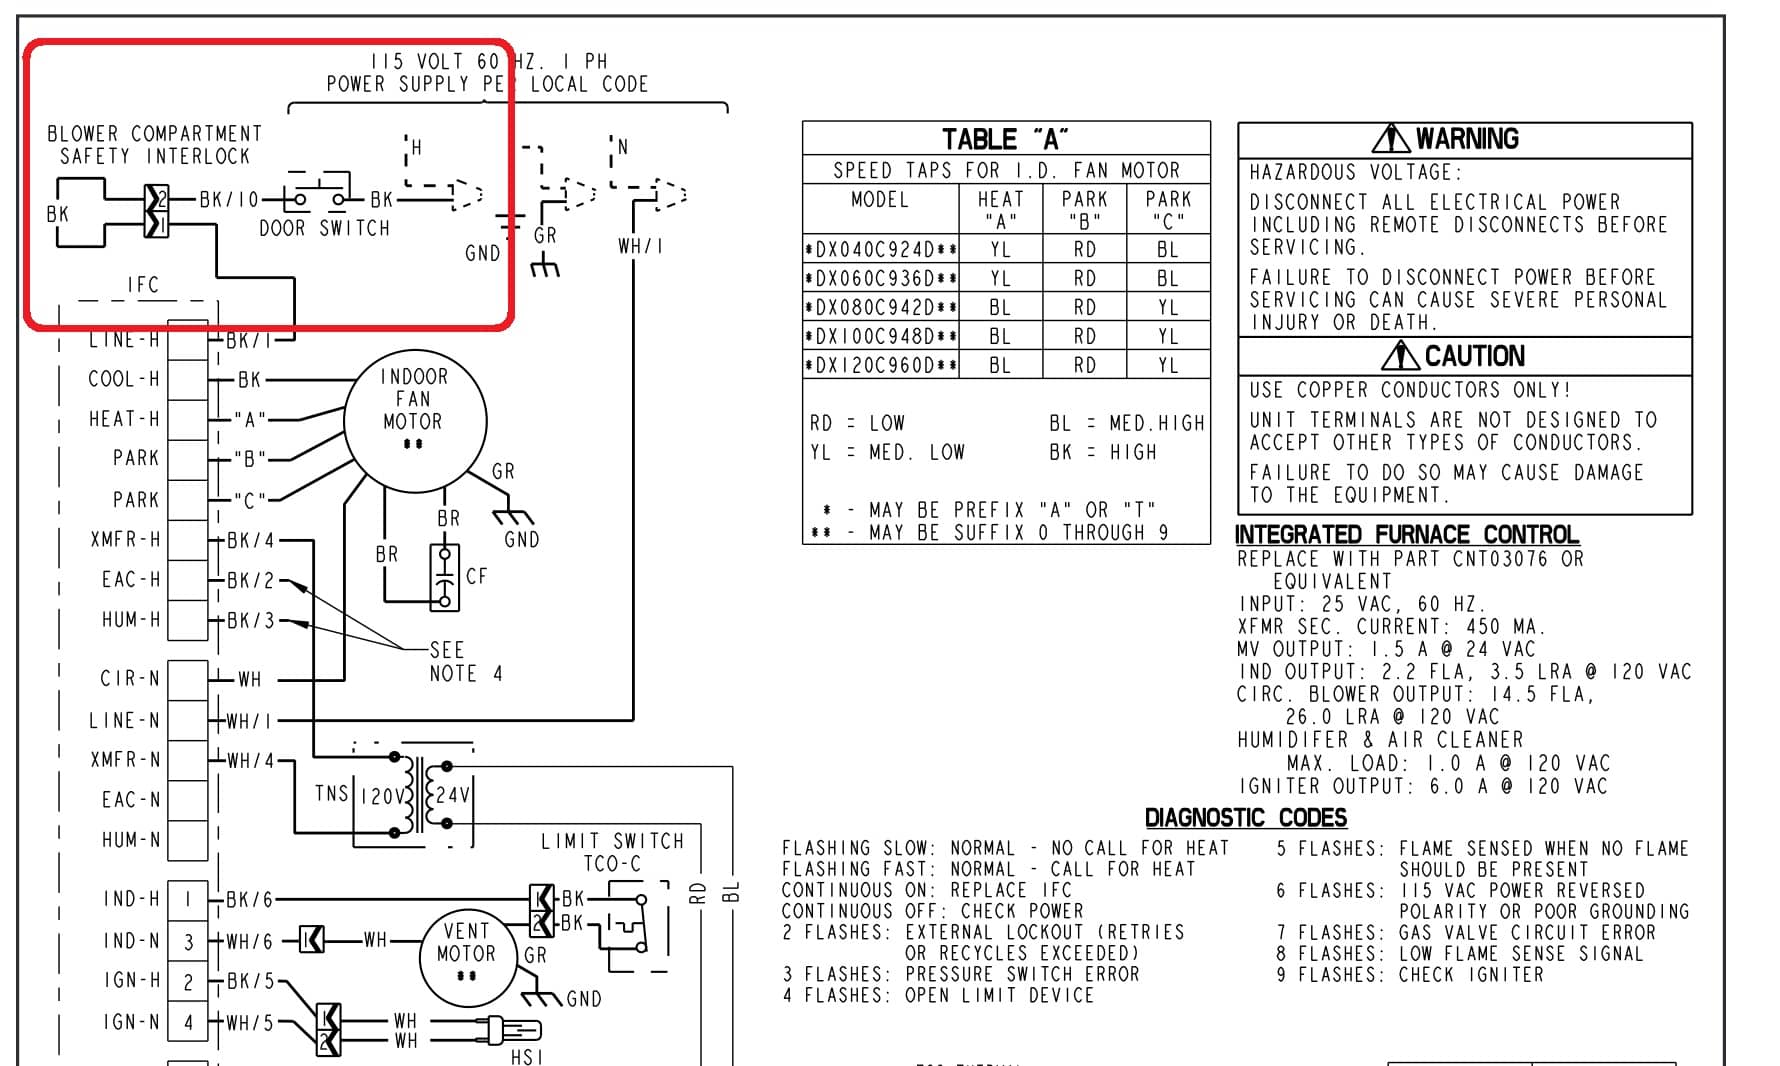 Luxaire Heat Pump Wiring Diagram Hvac Diy Chatroom